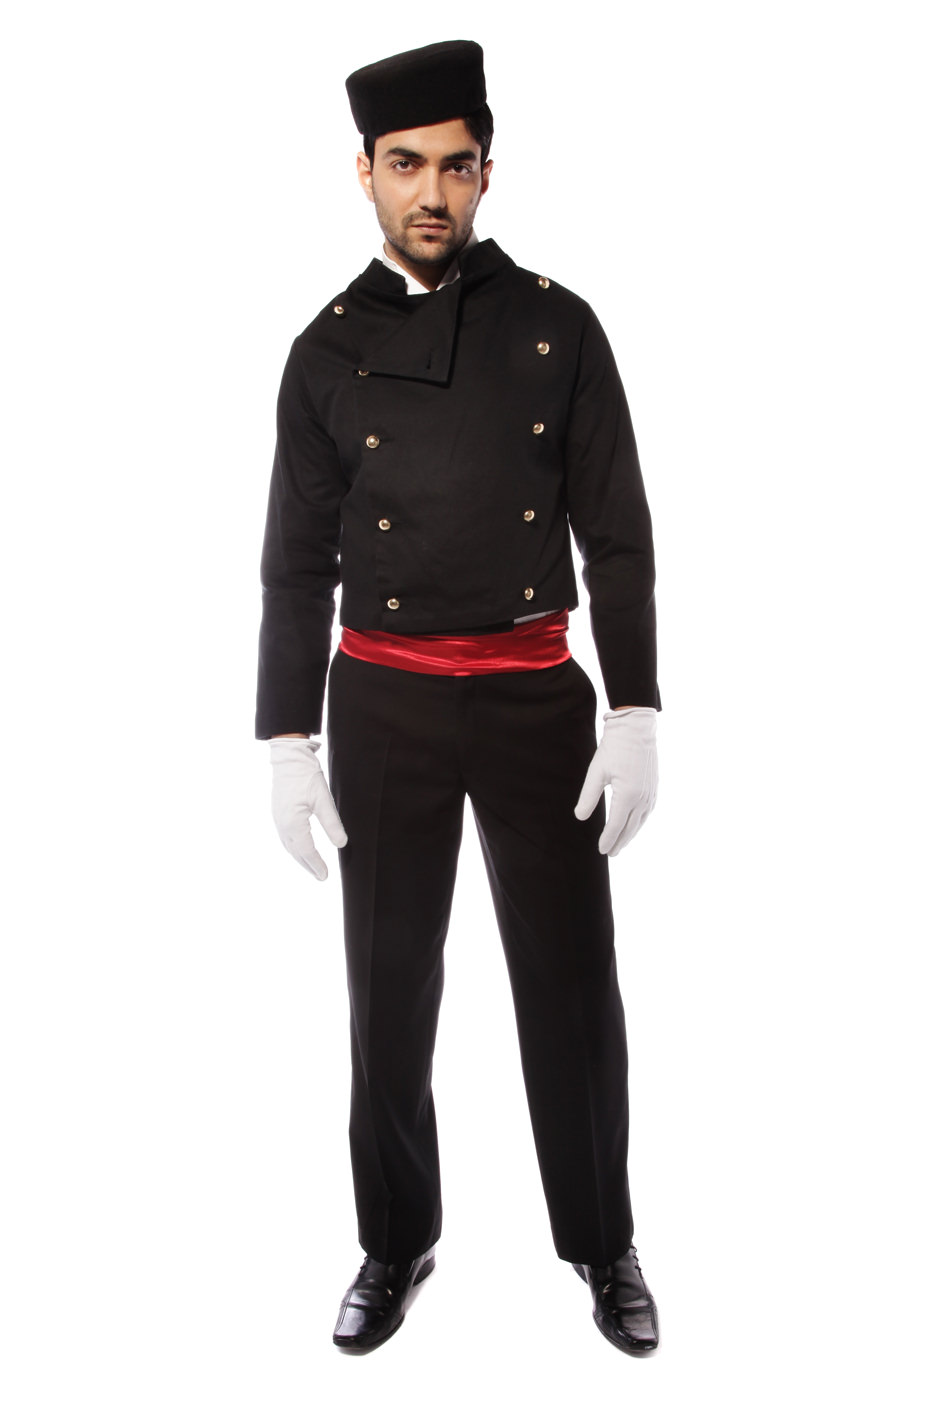 BELL BOY BLACK COSTUME WITH RED SASH